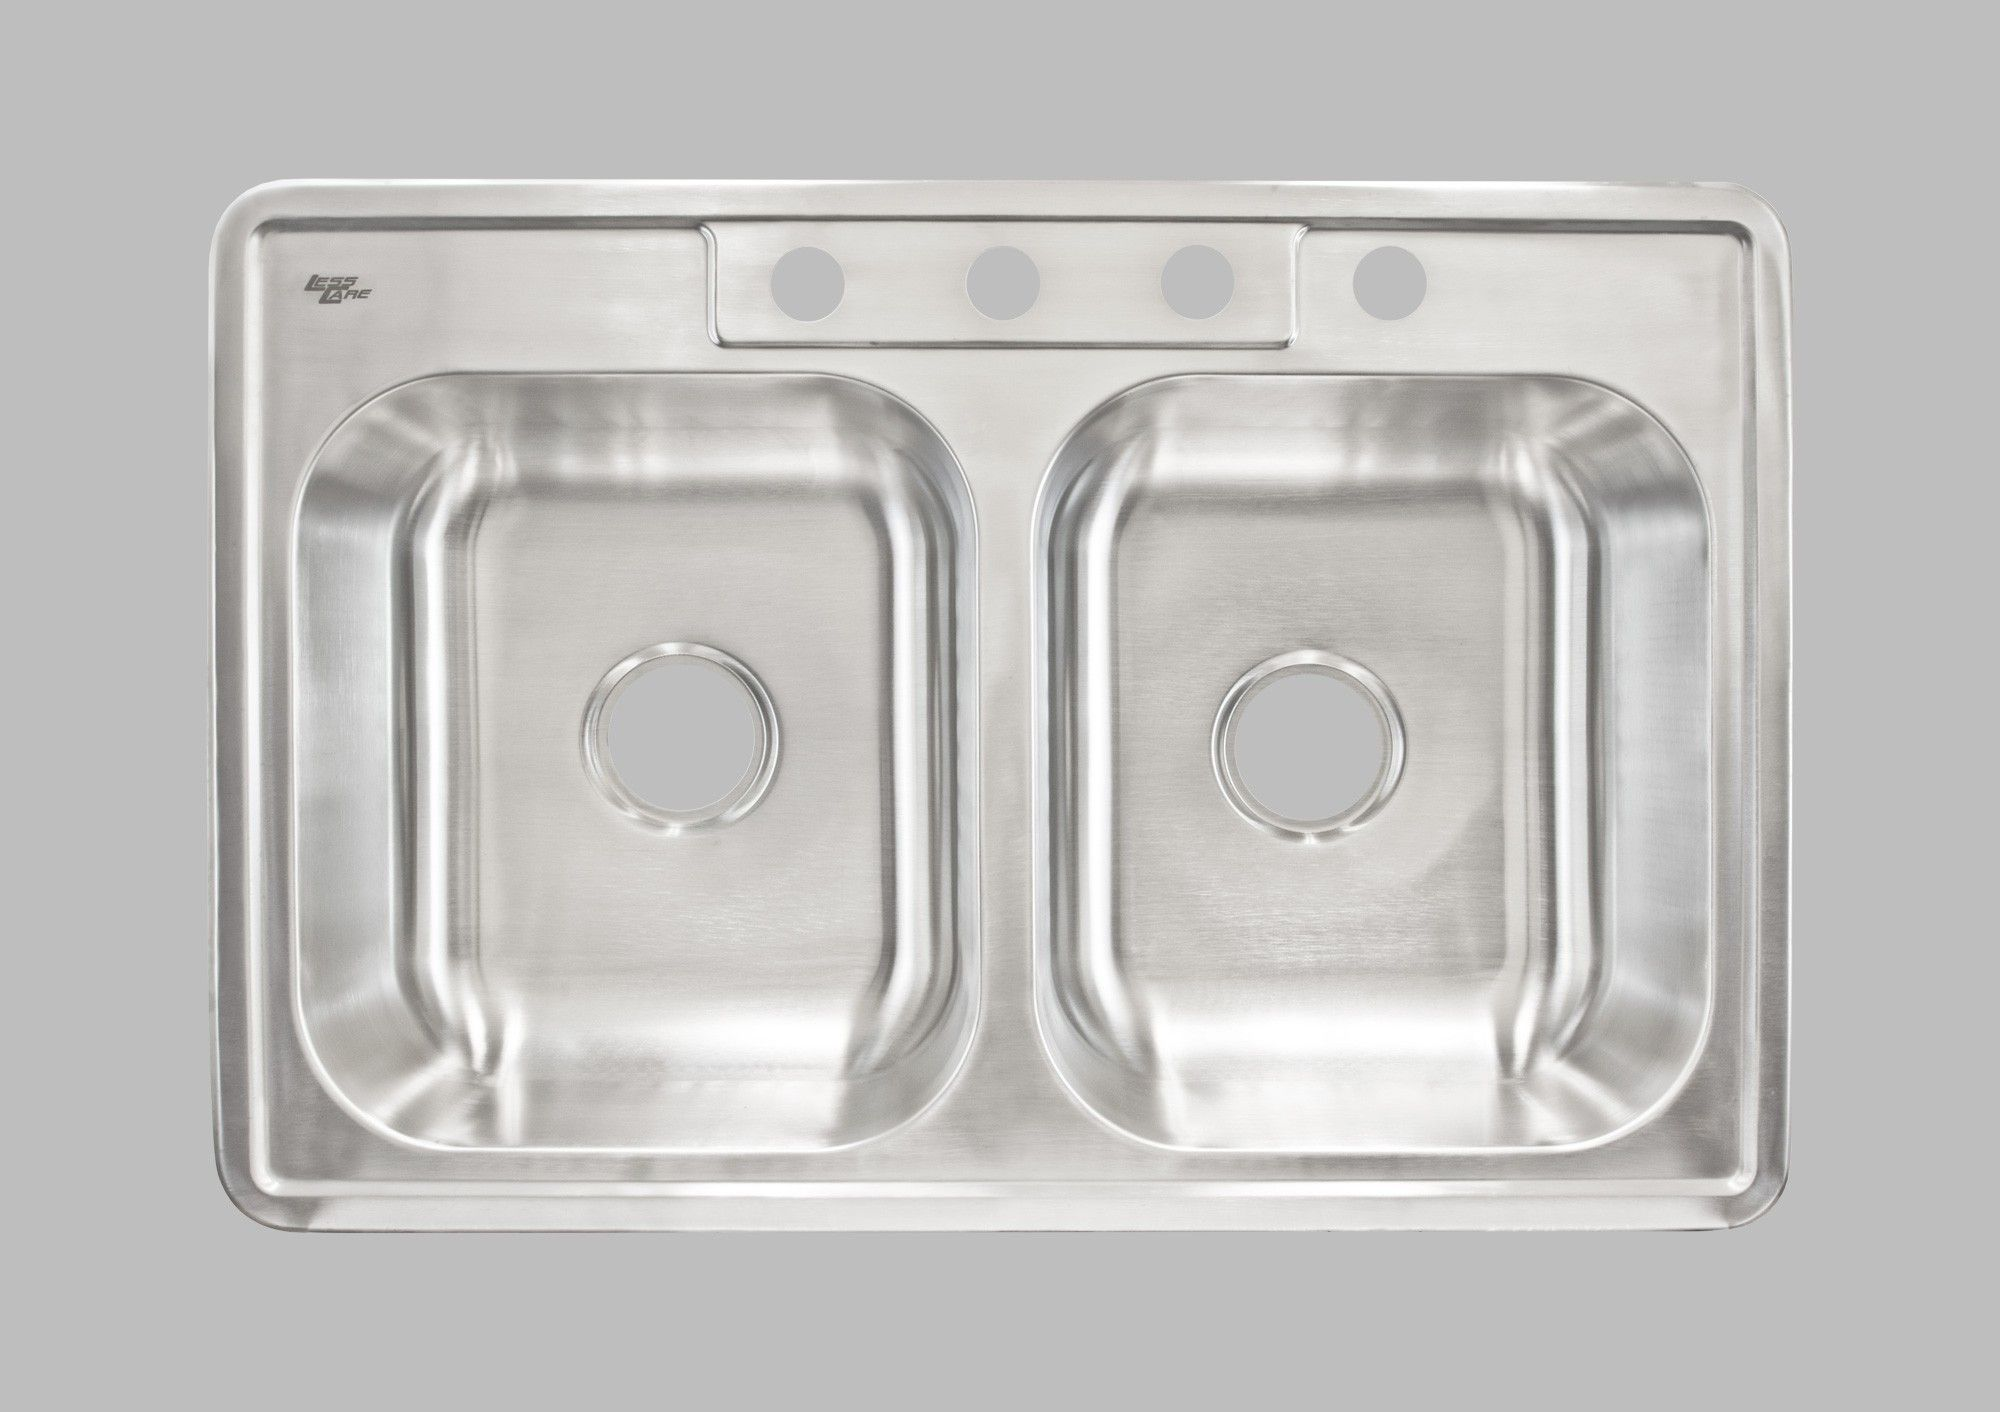 Lcltd64 Top Mount Stainless Steel Double Basin Kitchen Sink Top Mount Sinks Double Stainless Steel Kitchen Sink Double Basin Kitchen Sink Double Basin